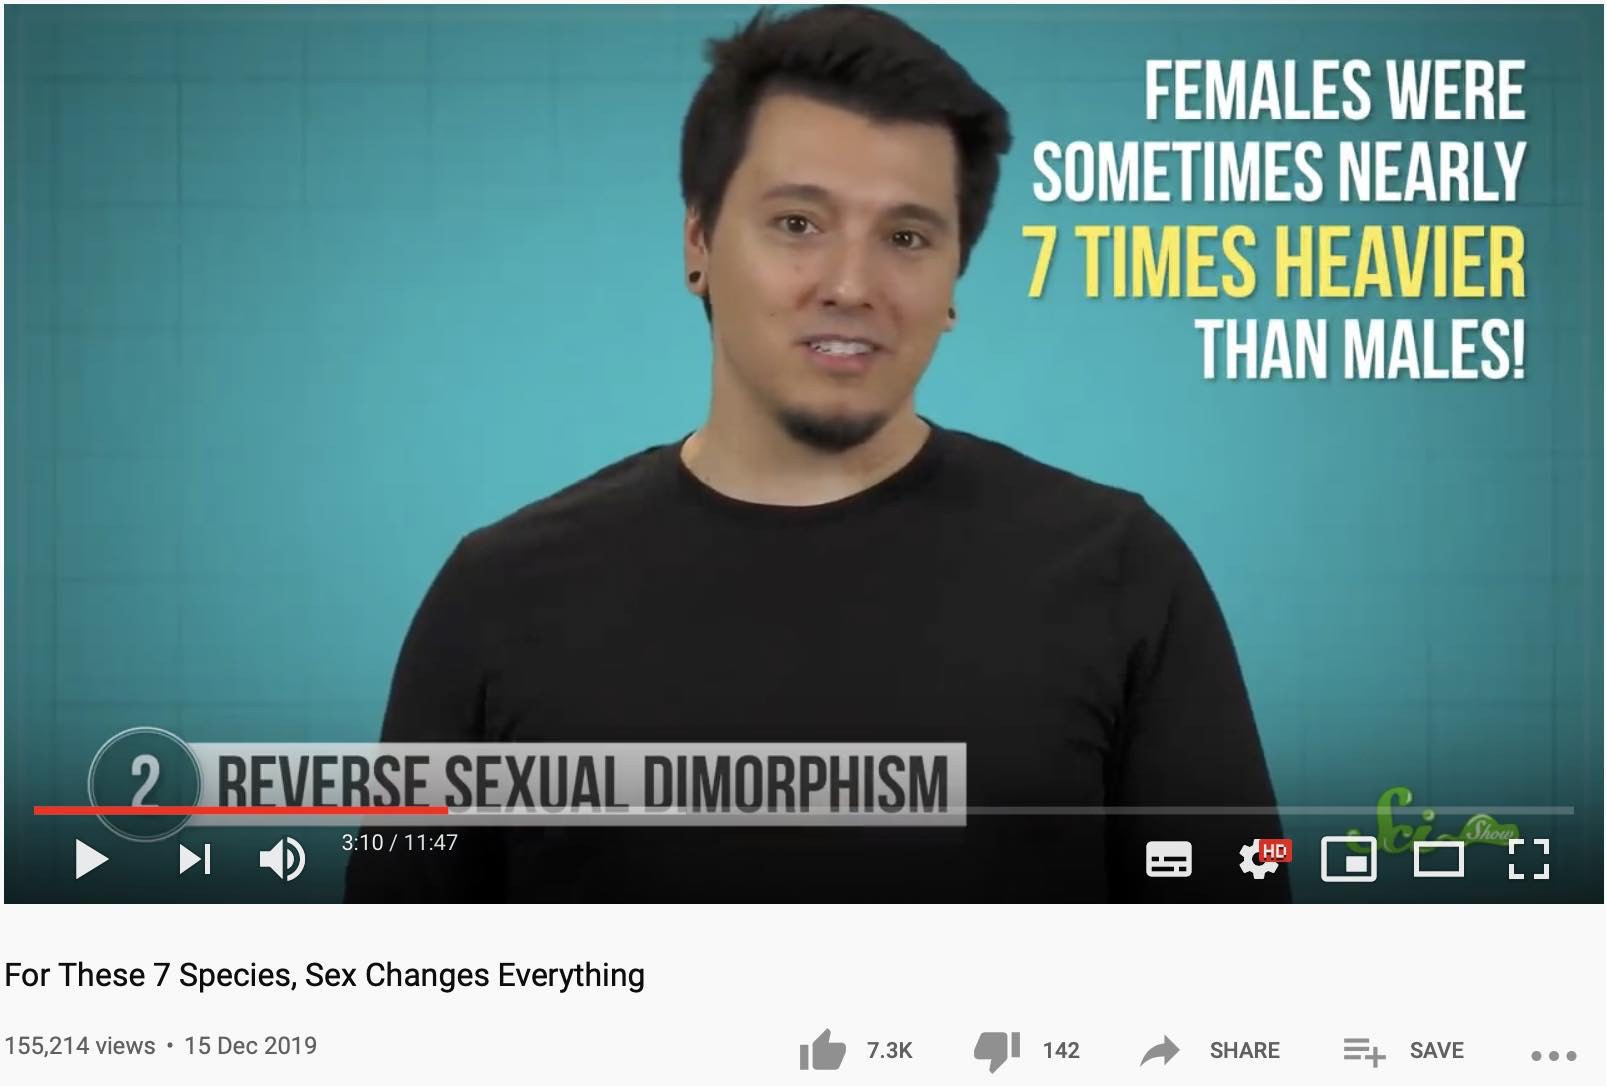 Screenshot from the video with text saying females were nearly 7 times heavier than males.